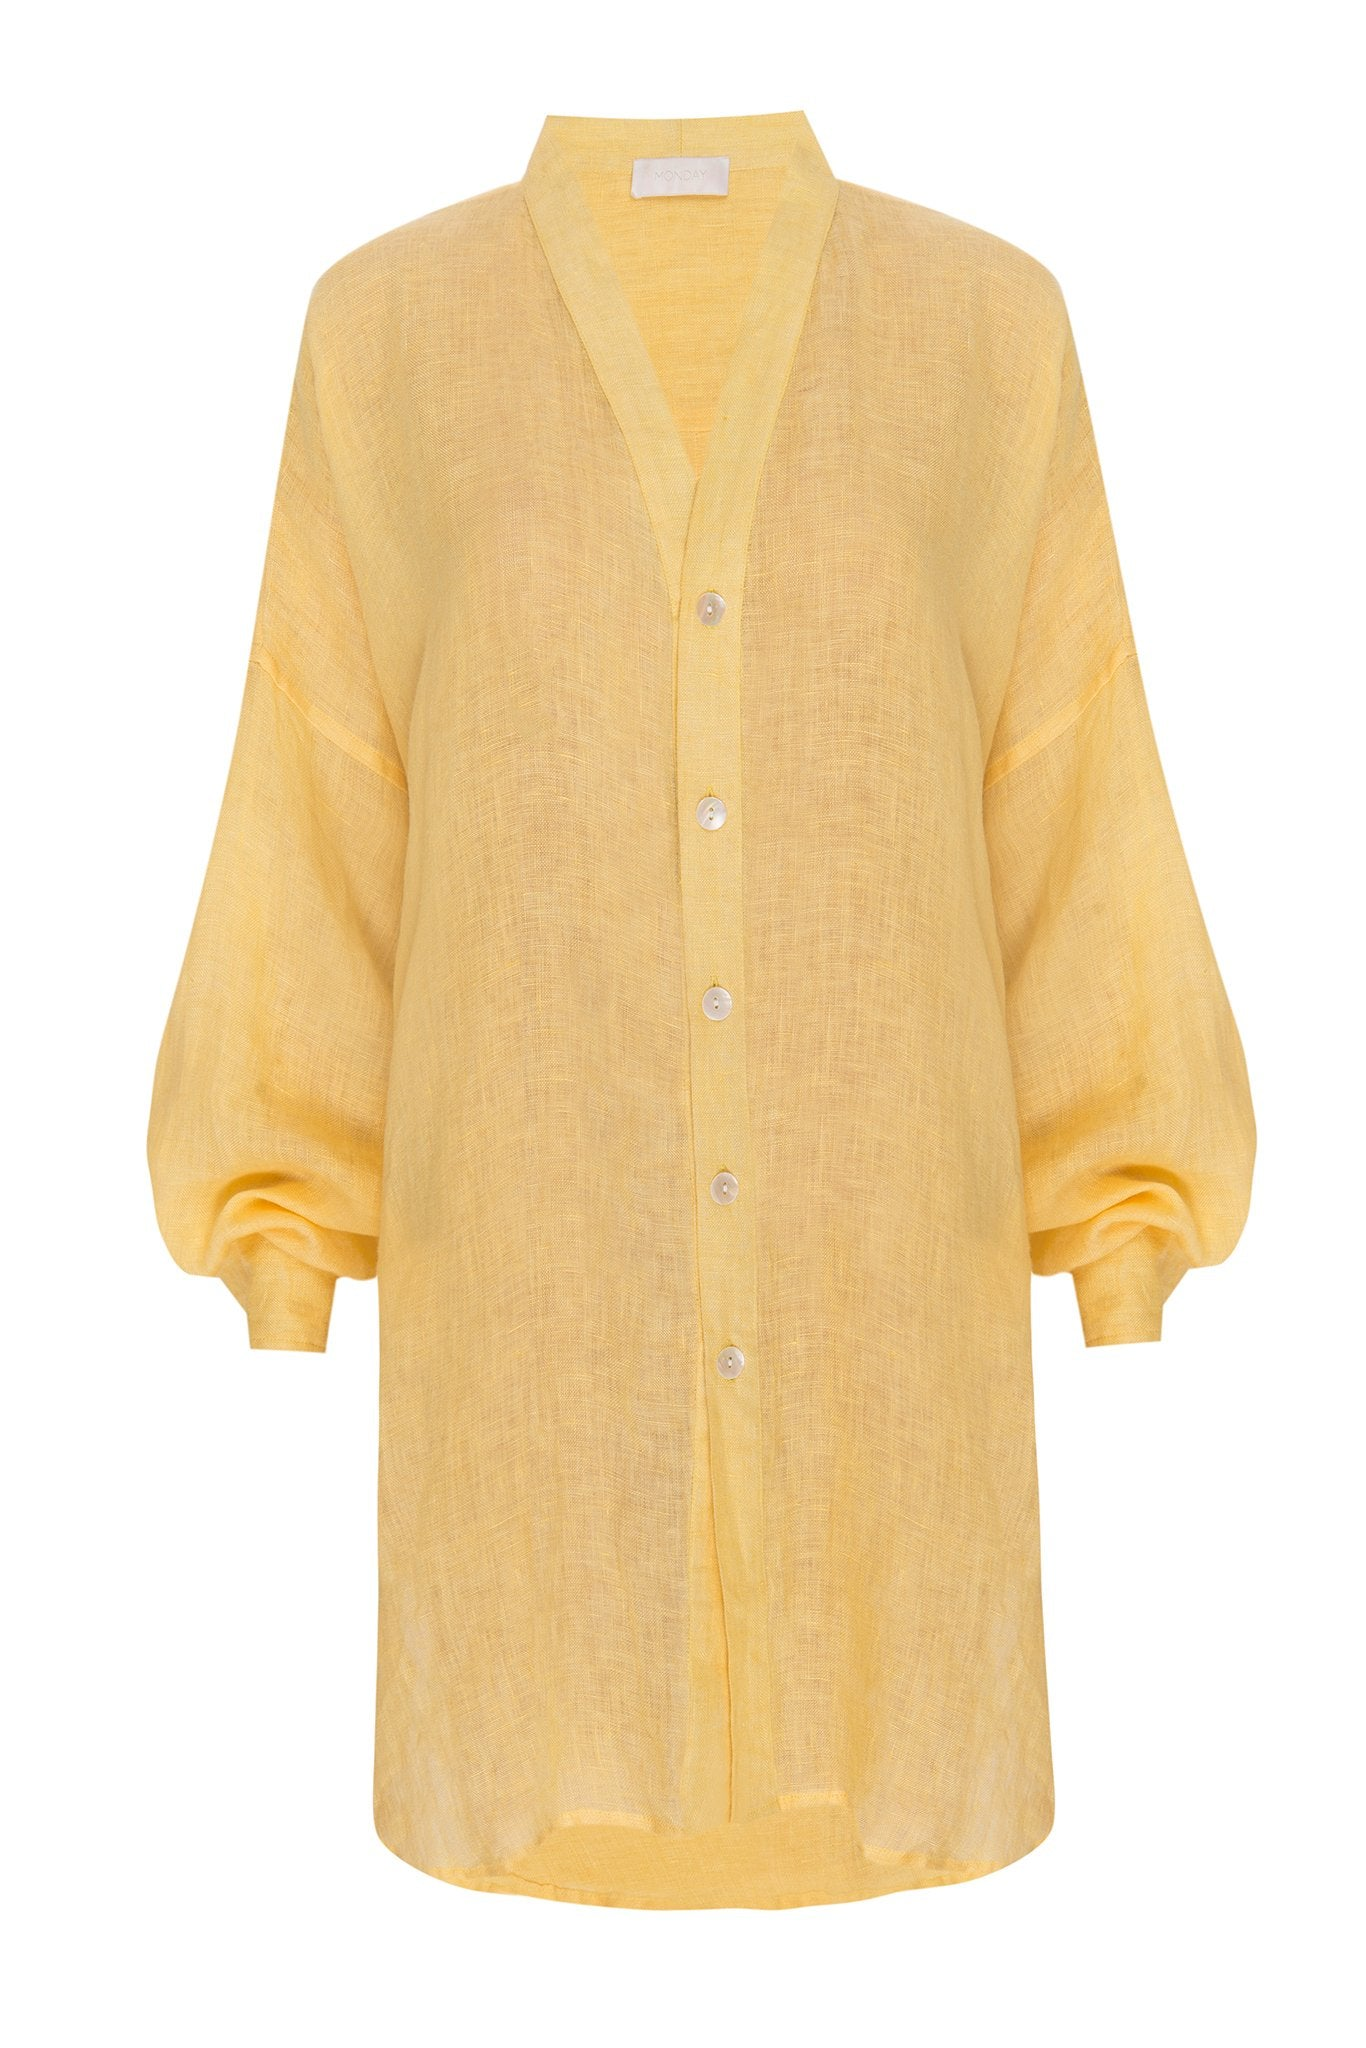 Load image into Gallery viewer, Barcelona Tunic - Butterscotch